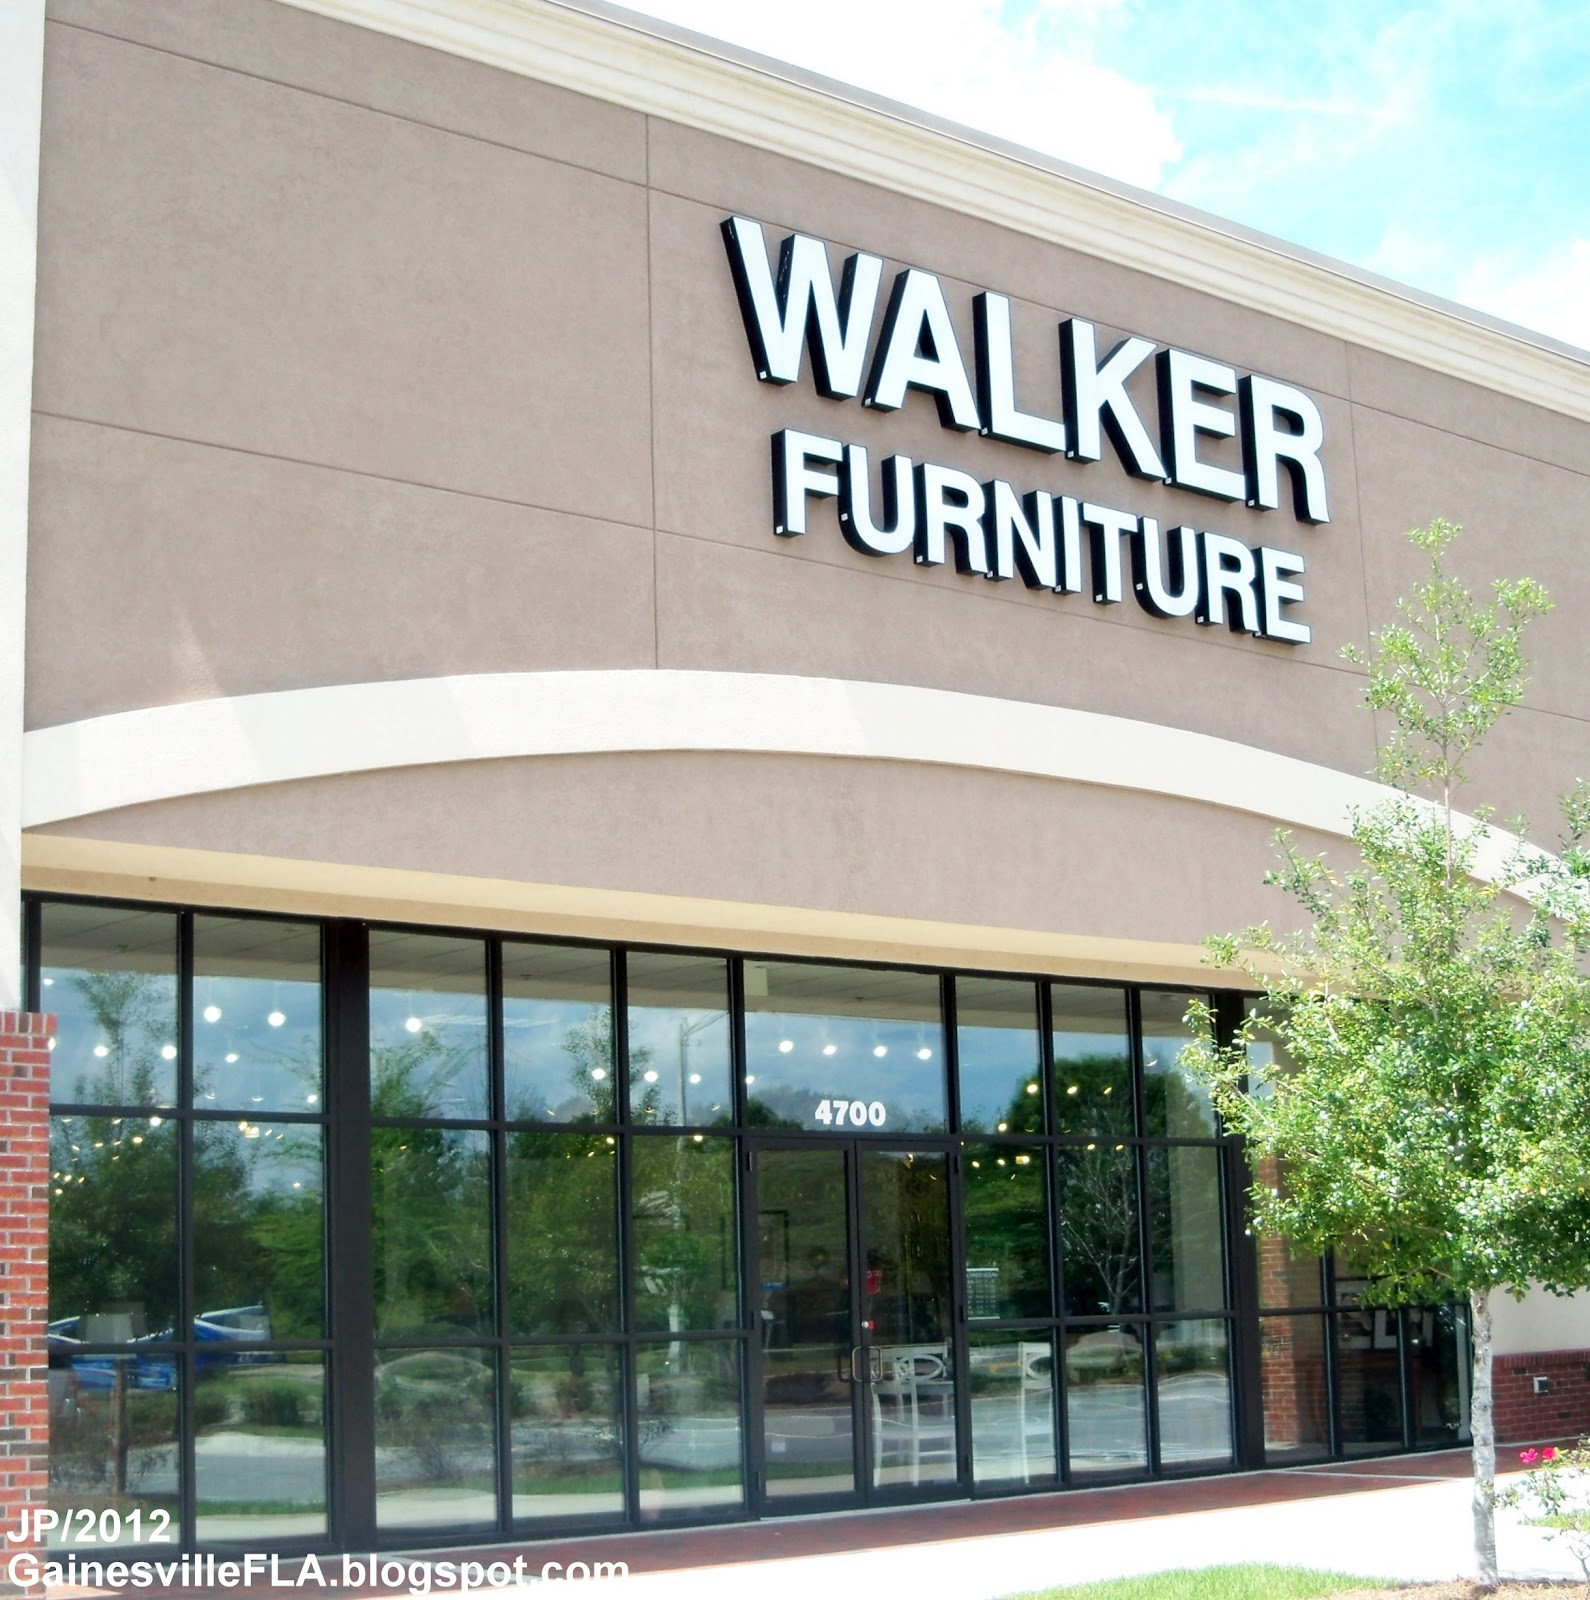 WALKER FURNITURE GAINESVILLE FLORIDA SW 34th St. Walker Furniture Store  Alachua County Gainesville FL.